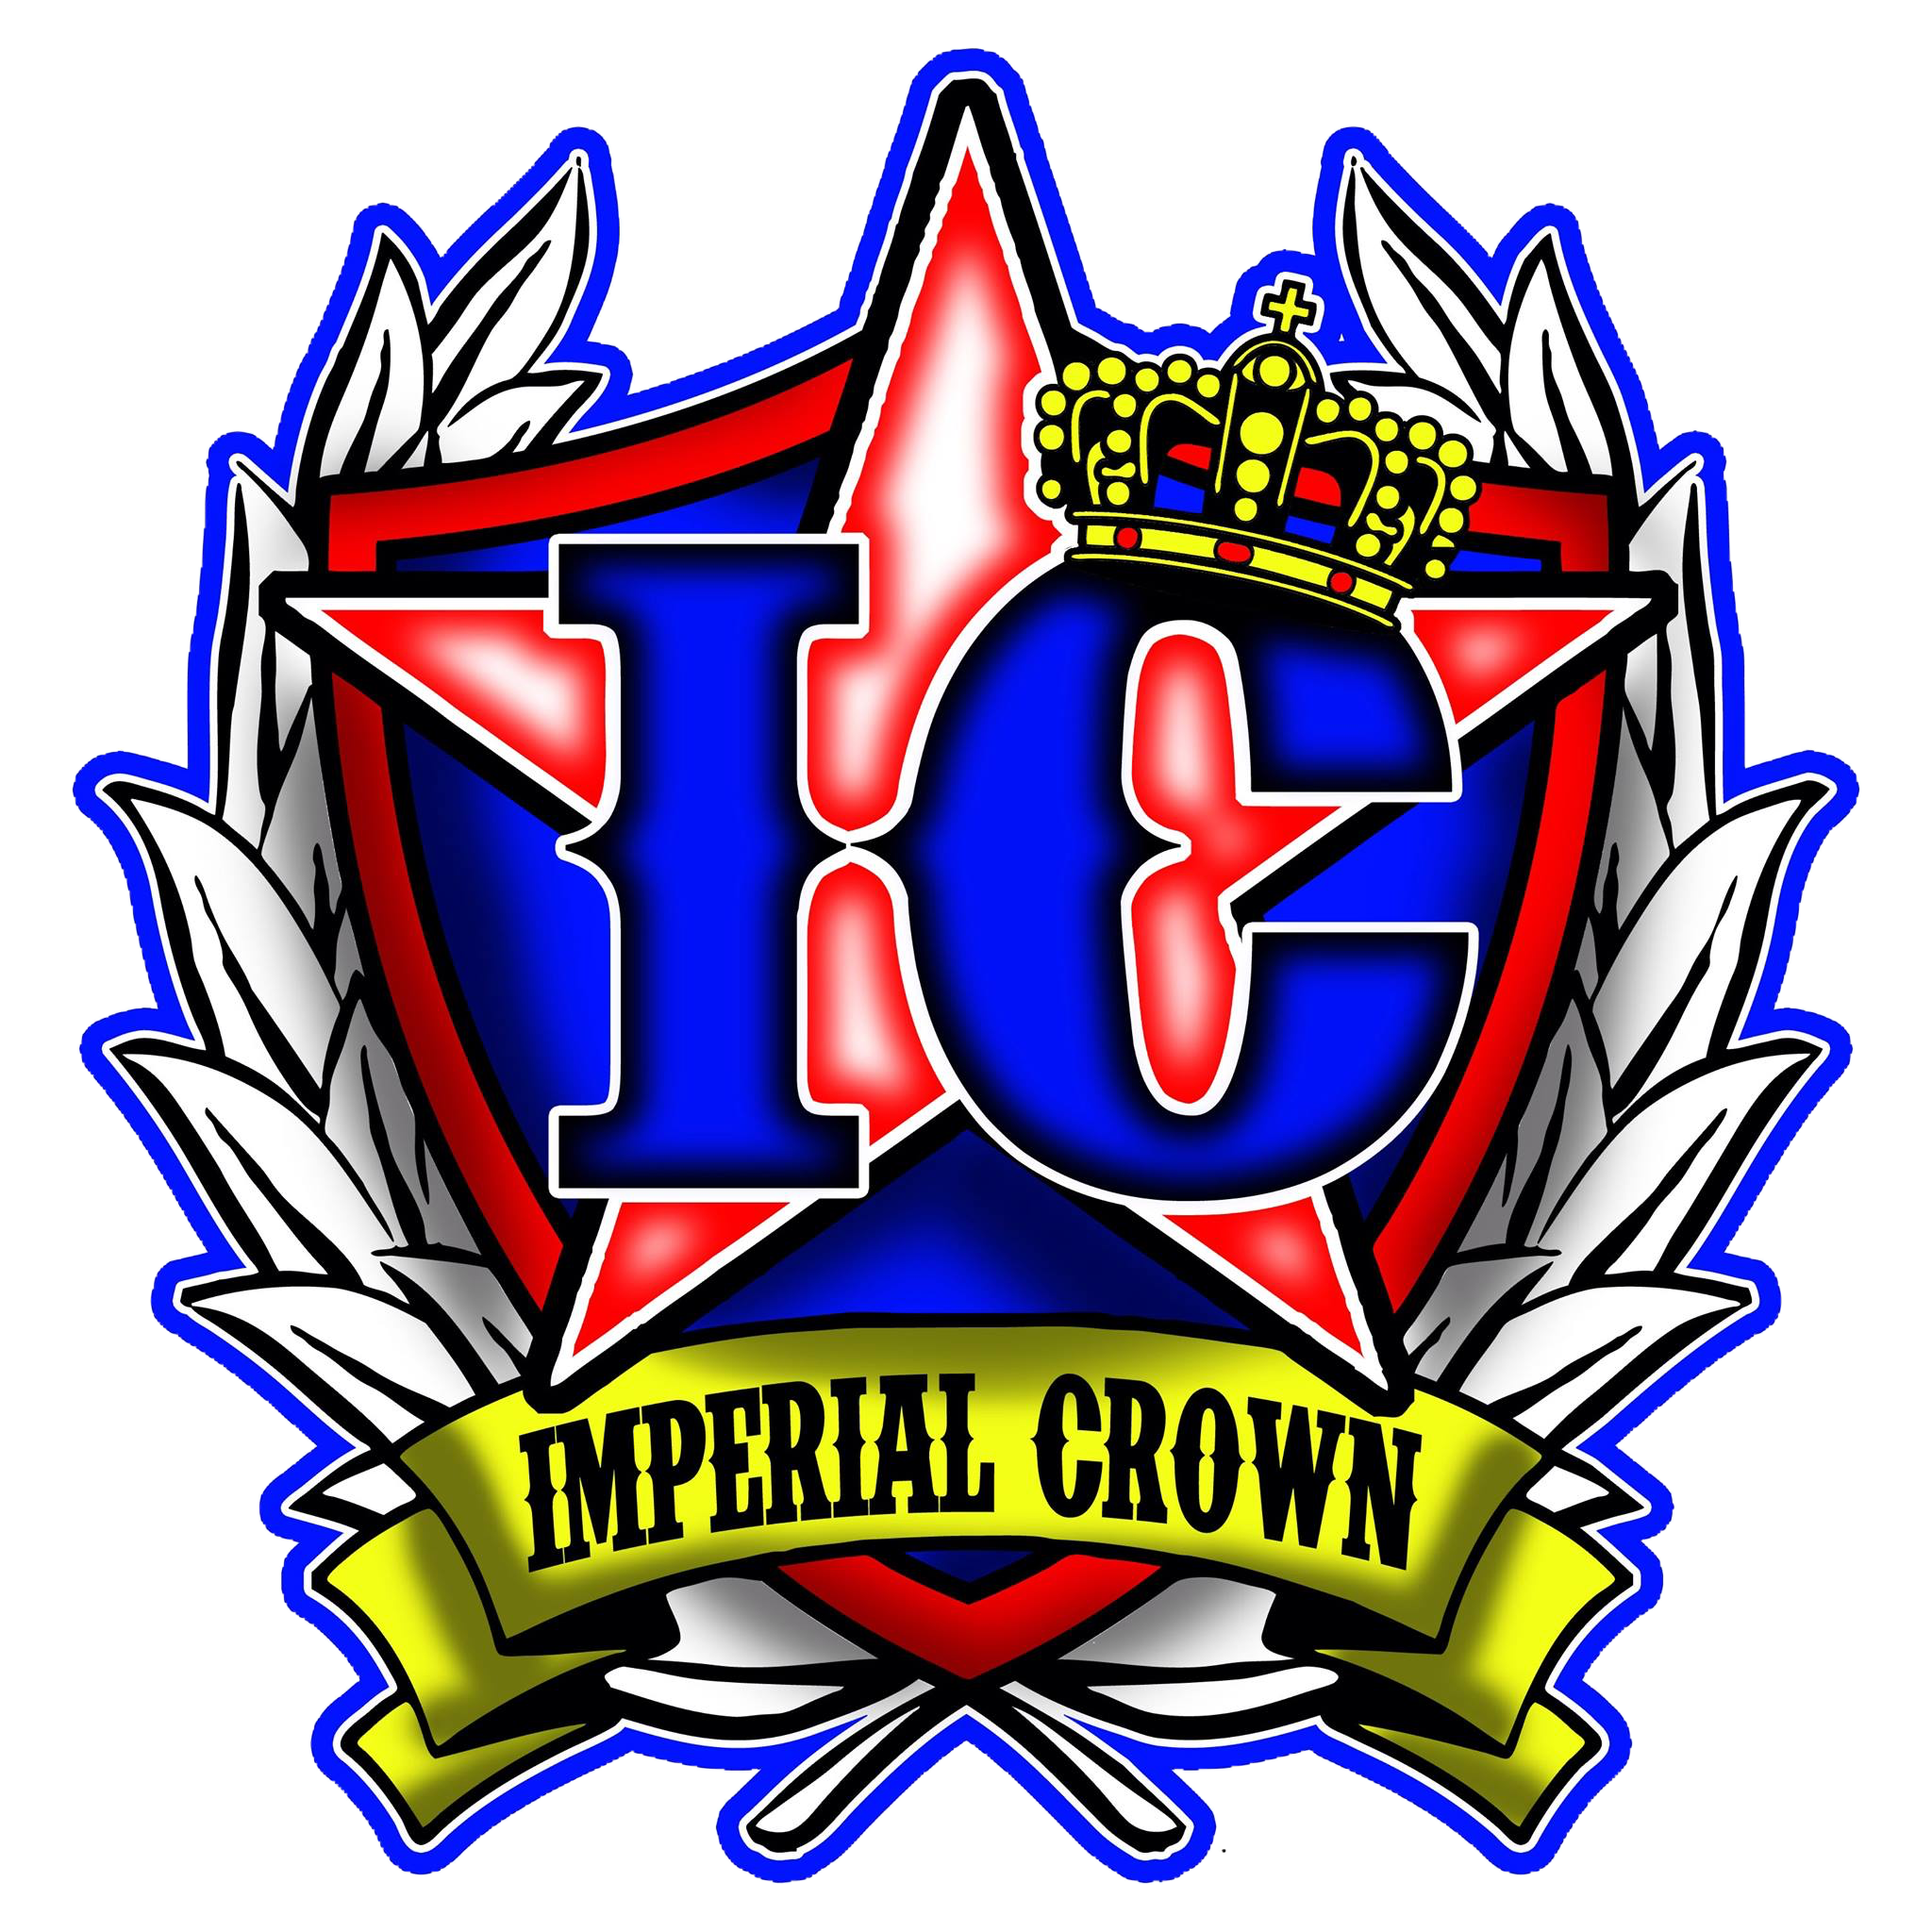 Imperial Crown Entertainment